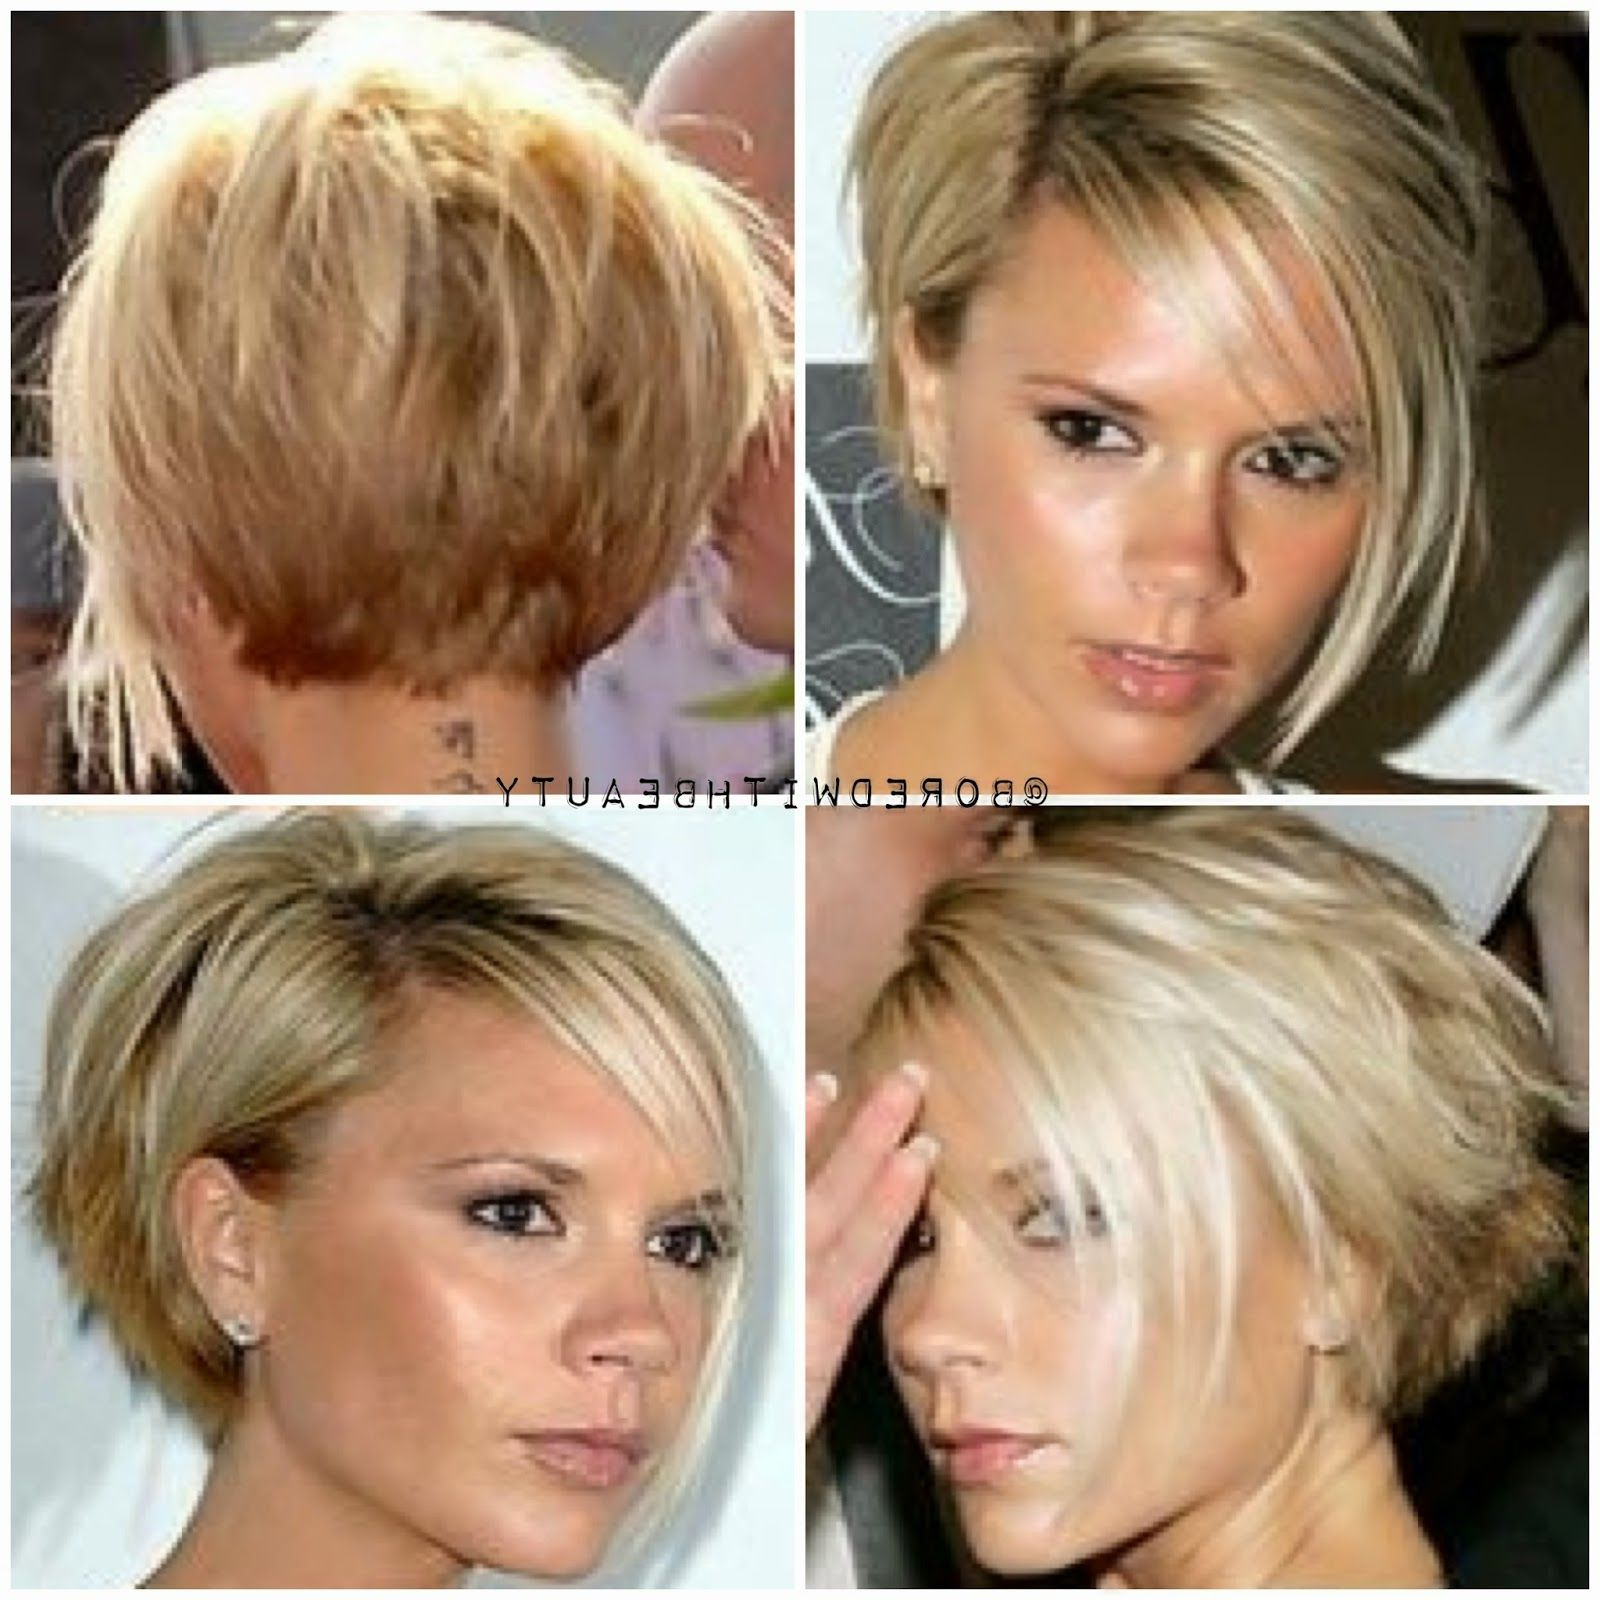 Ping W On Current Hair Desire In 2018 | Pinterest | Hair, Short For Victoria Beckham Short Haircuts (View 6 of 25)